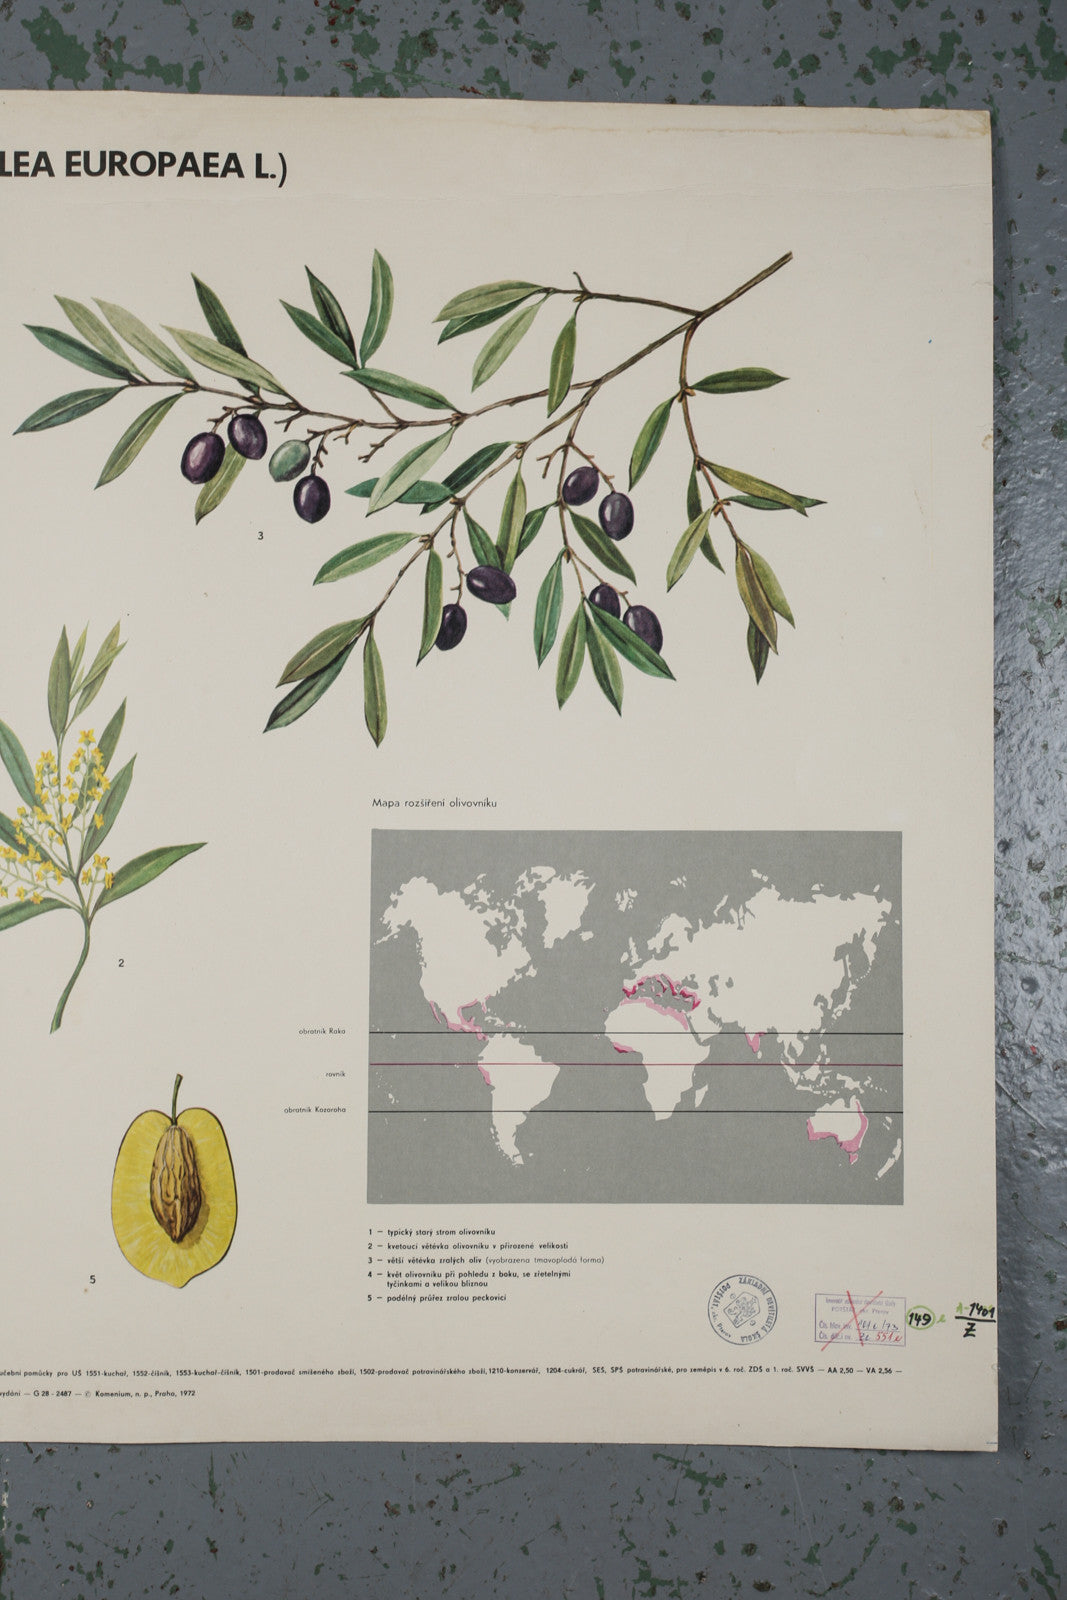 Botanical educational poster from 1972